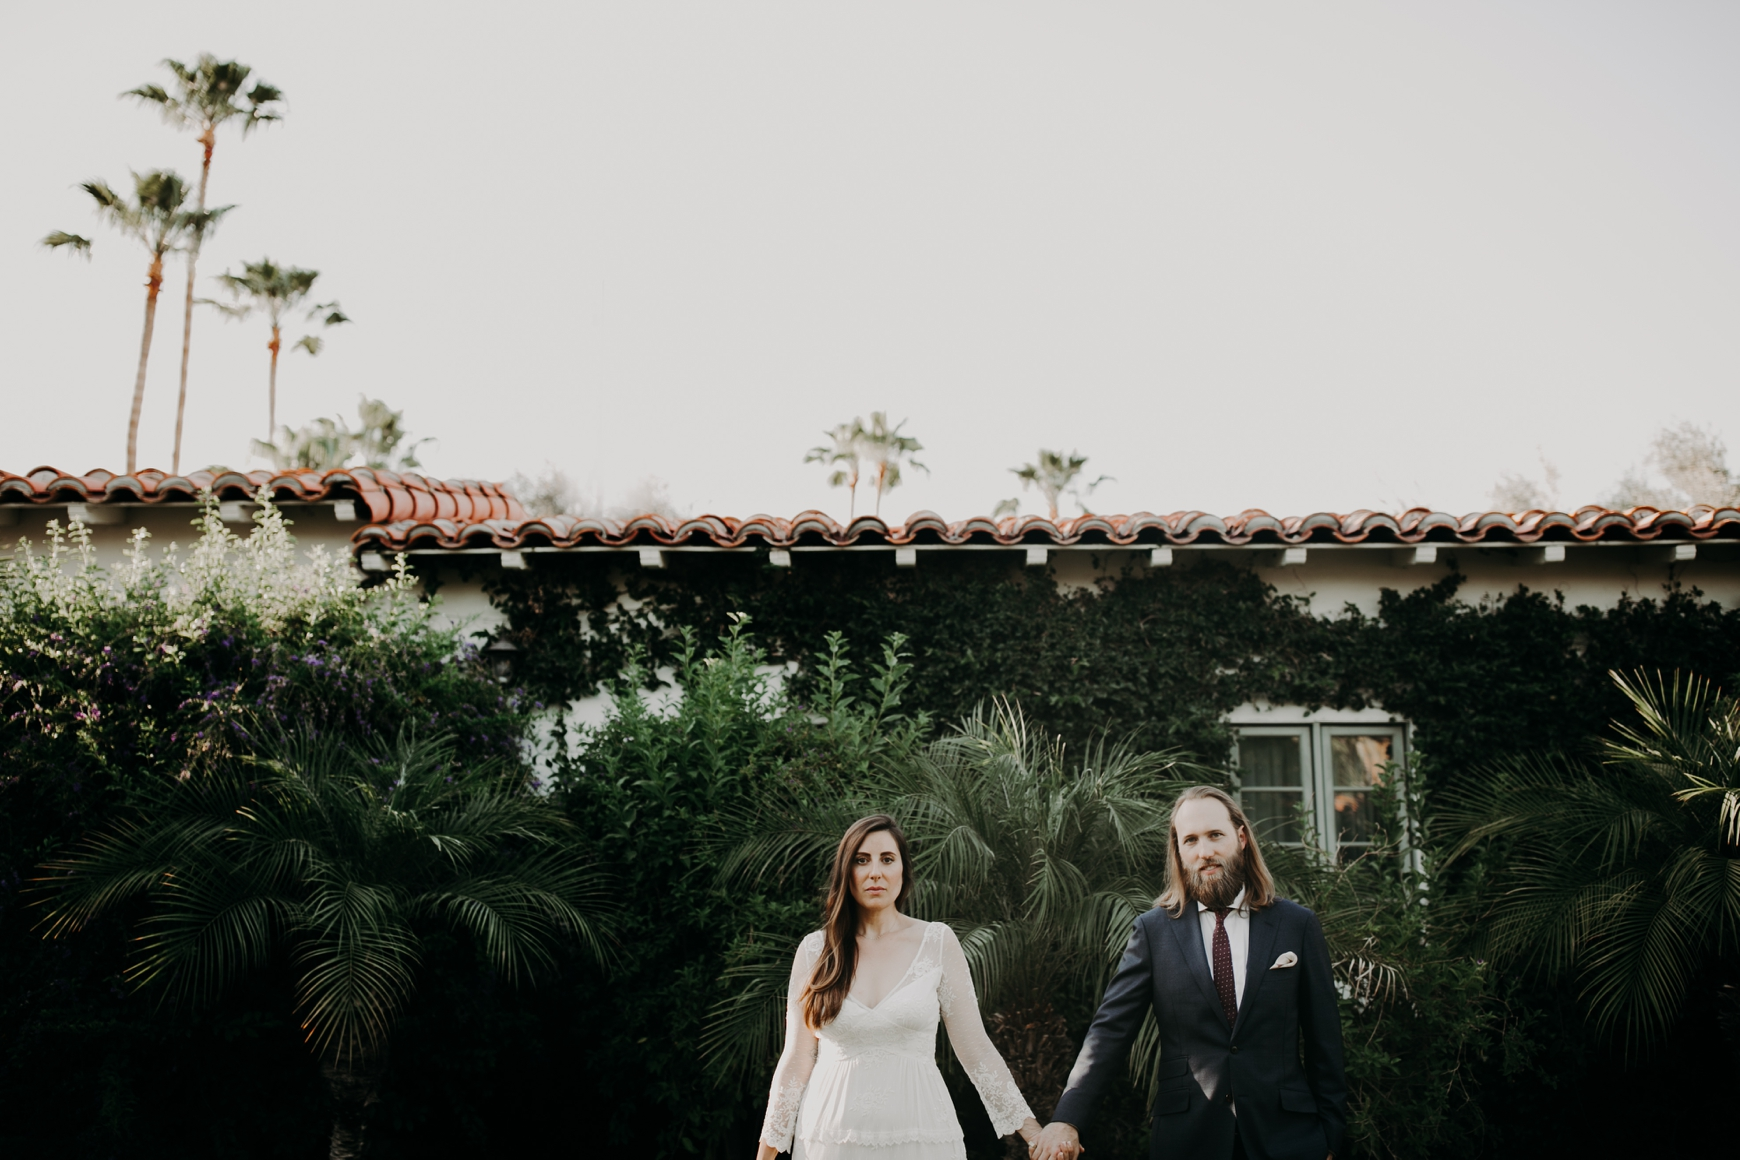 The Colony Palms Hotel Palm Springs Wedding Jaclyn & Tyson Emily Magers Photography-356.jpg